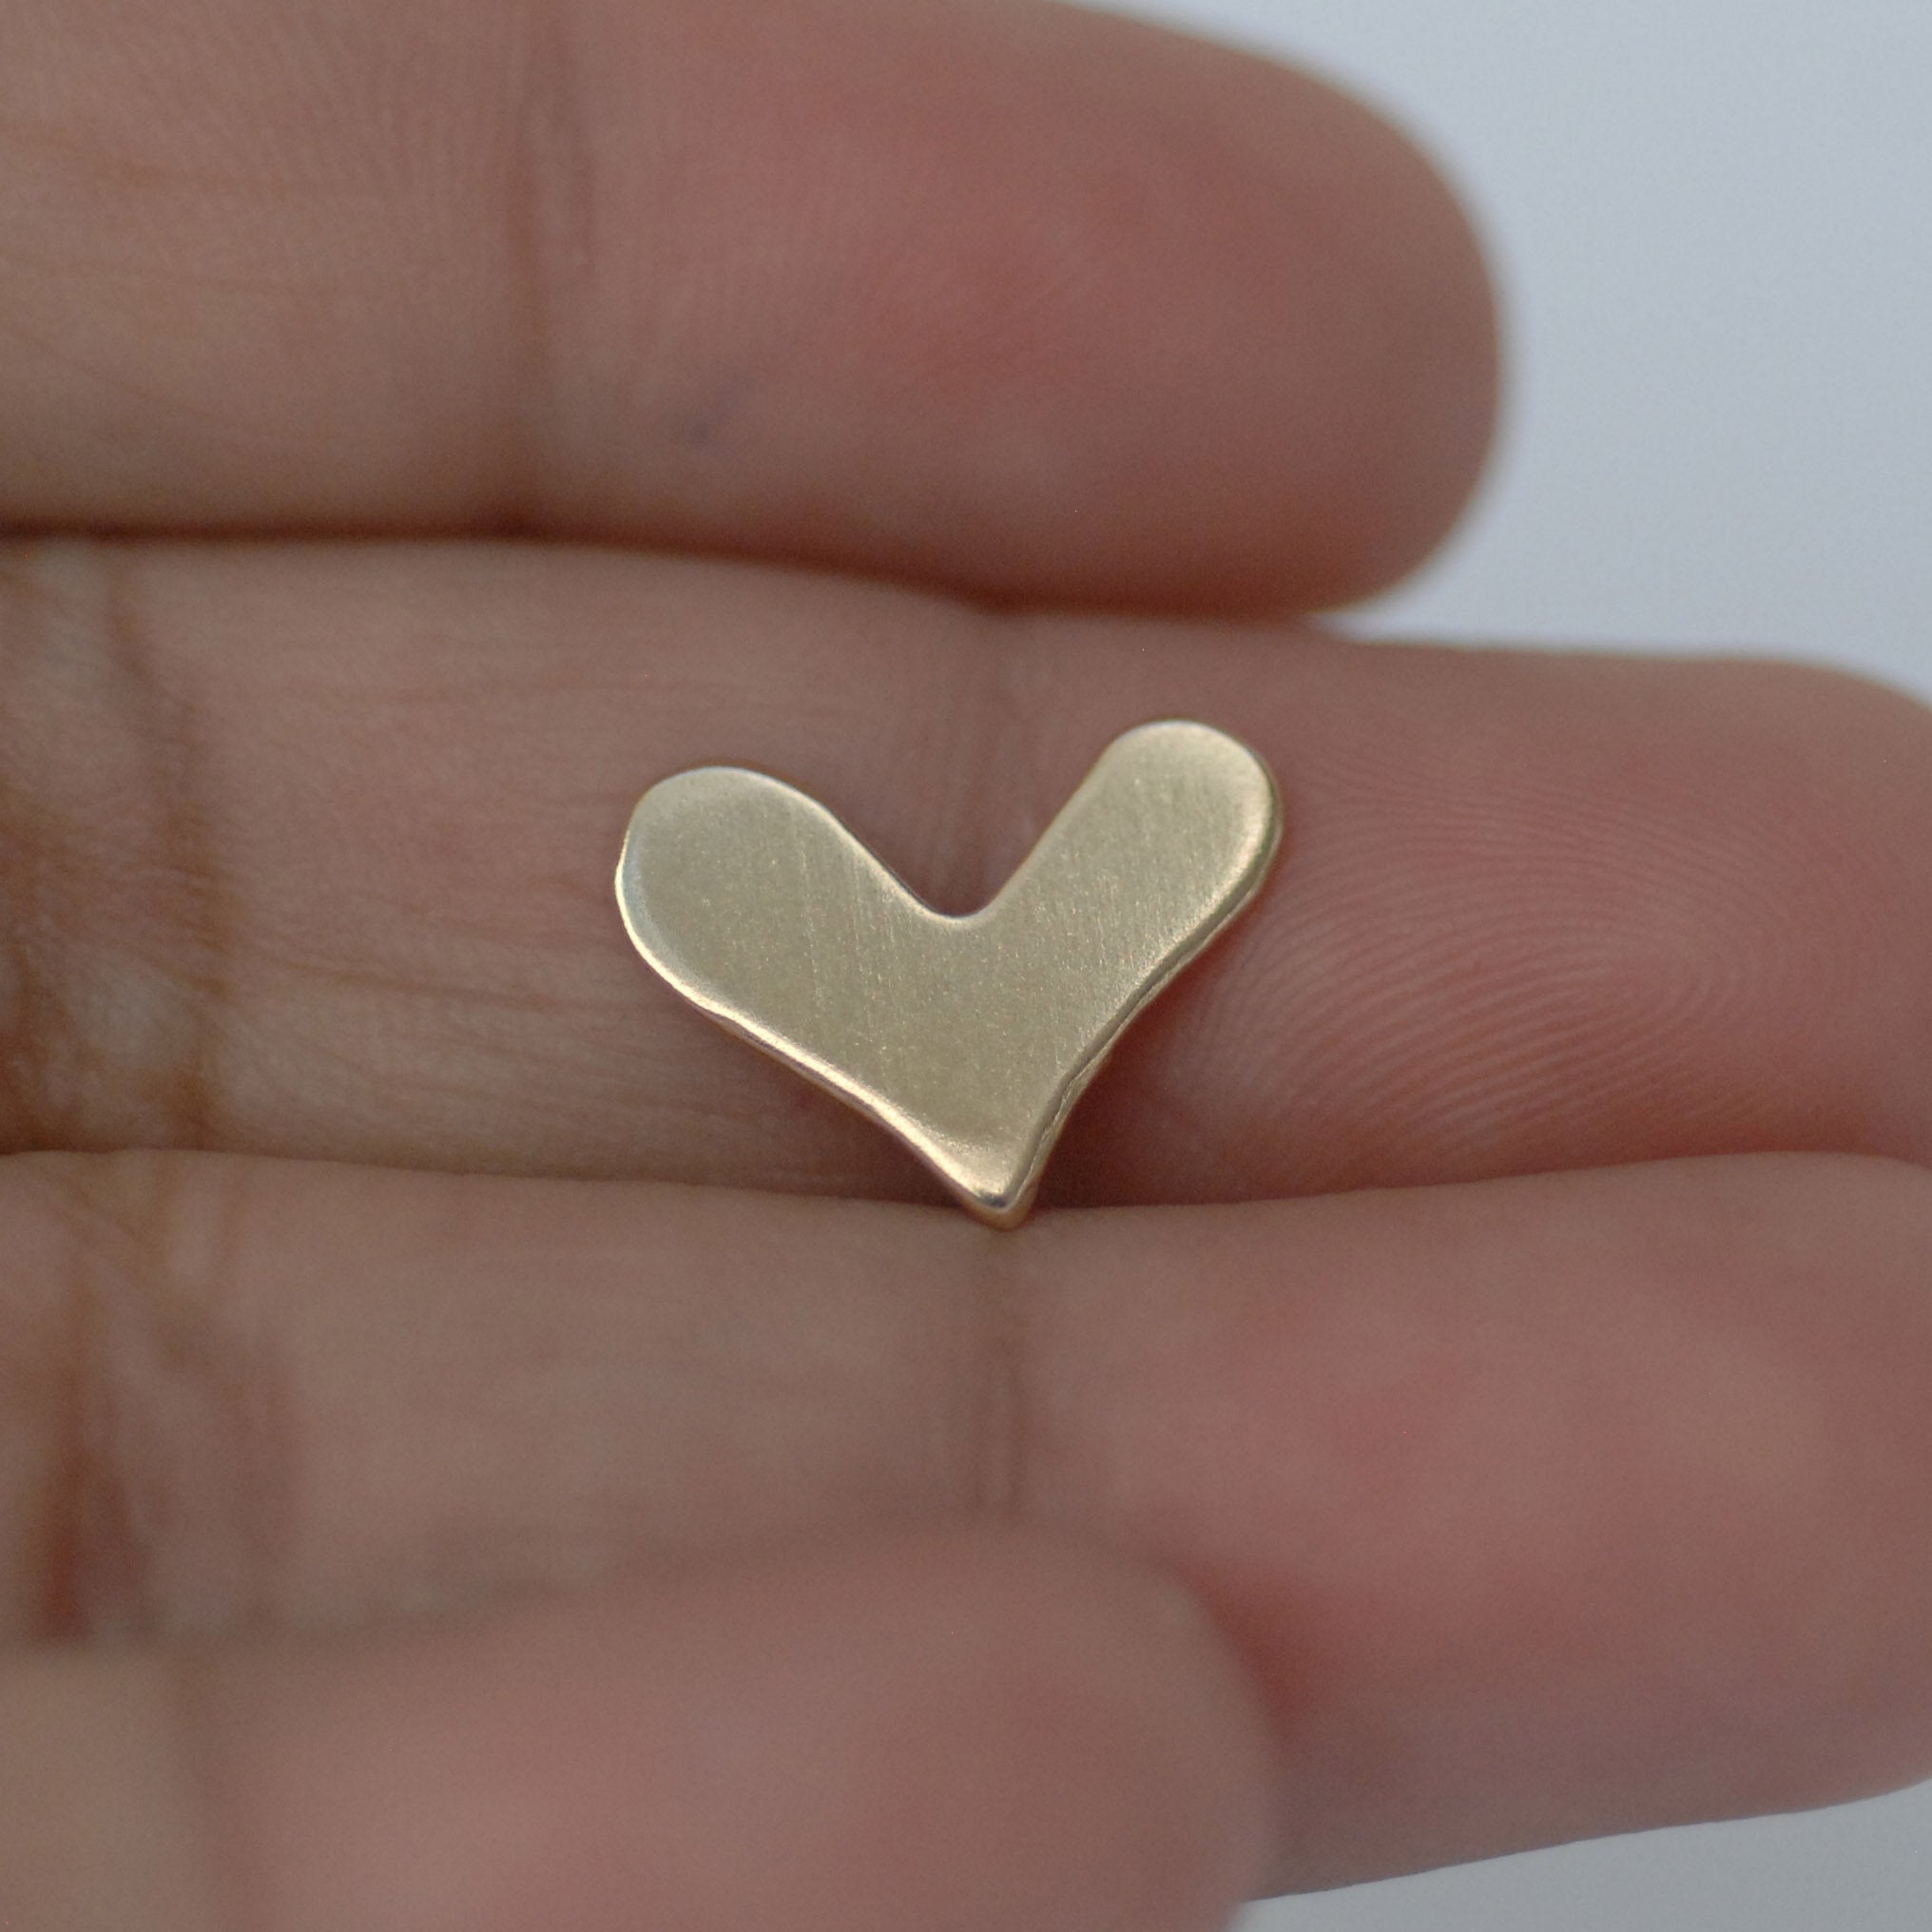 Deep V Heart blanks 14mm x 11mm 20g for Enameling copper, brass, bronze, nickel silver